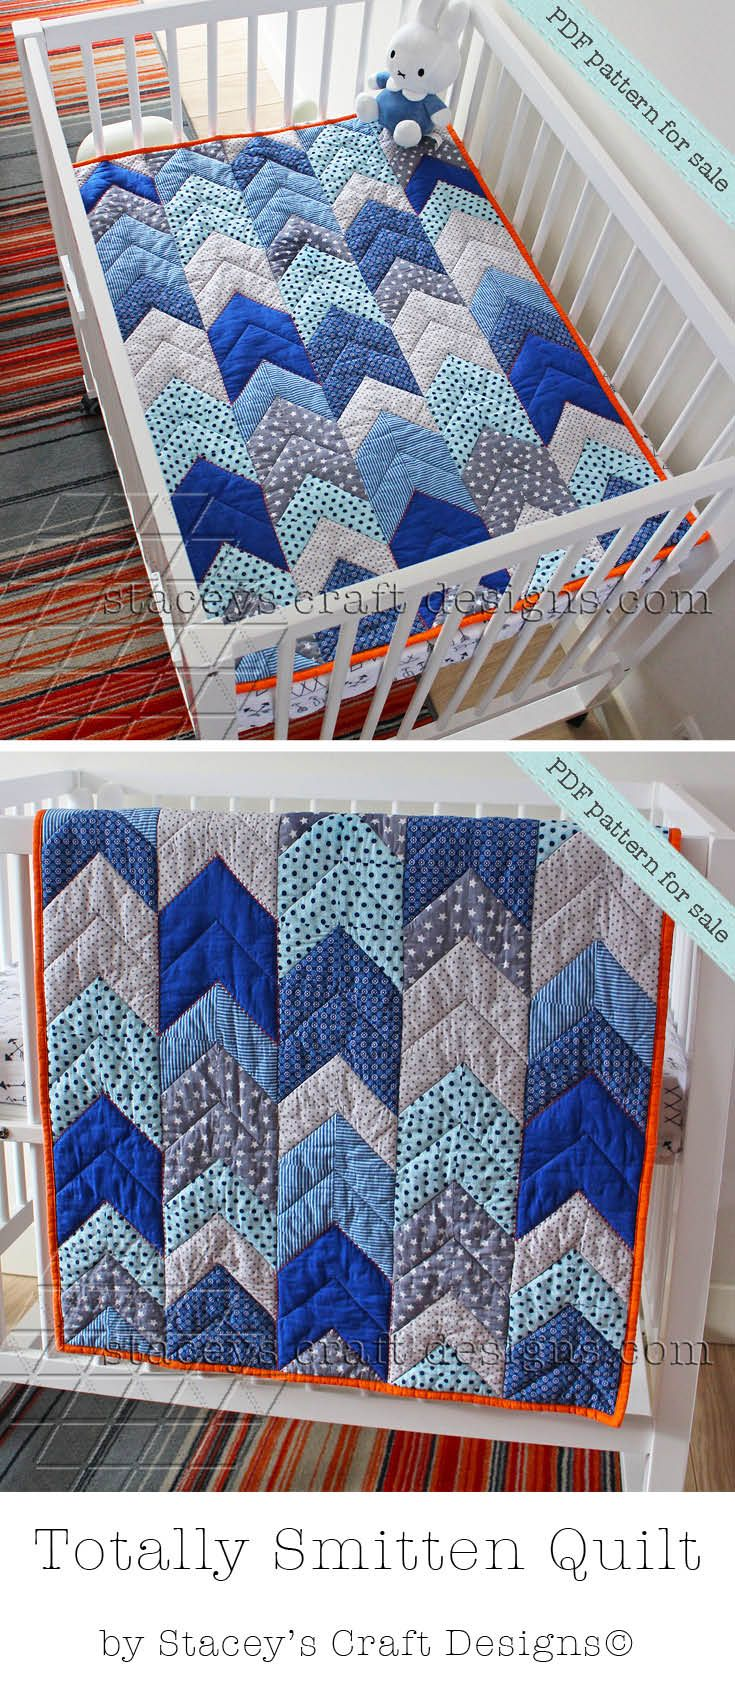 Totally Smitten quilt pattern by Stacey's Craft Designs